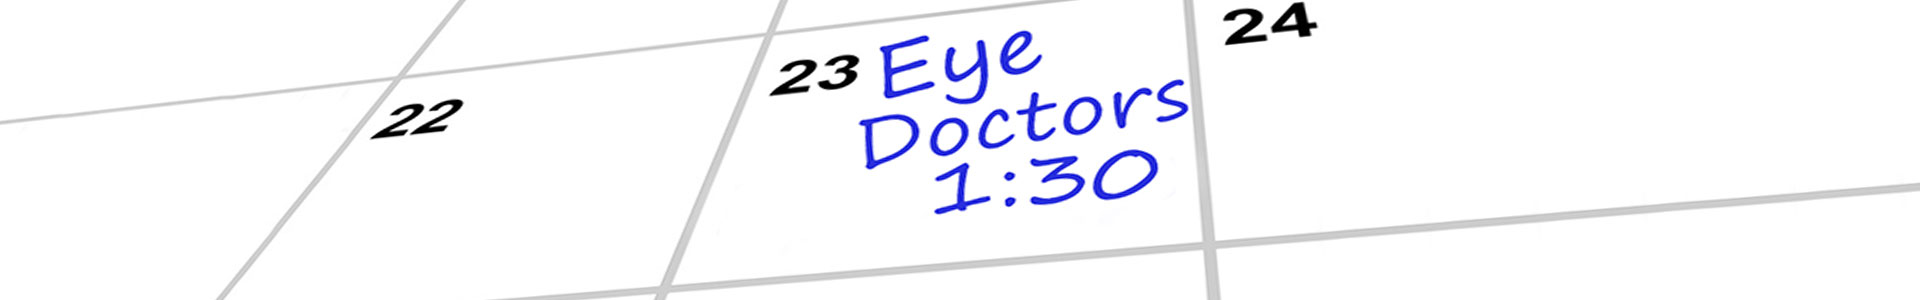 contact-us-white-eye-care-logan-wv-family-eye-care-exams-designer-frames-sunglasses-contacts